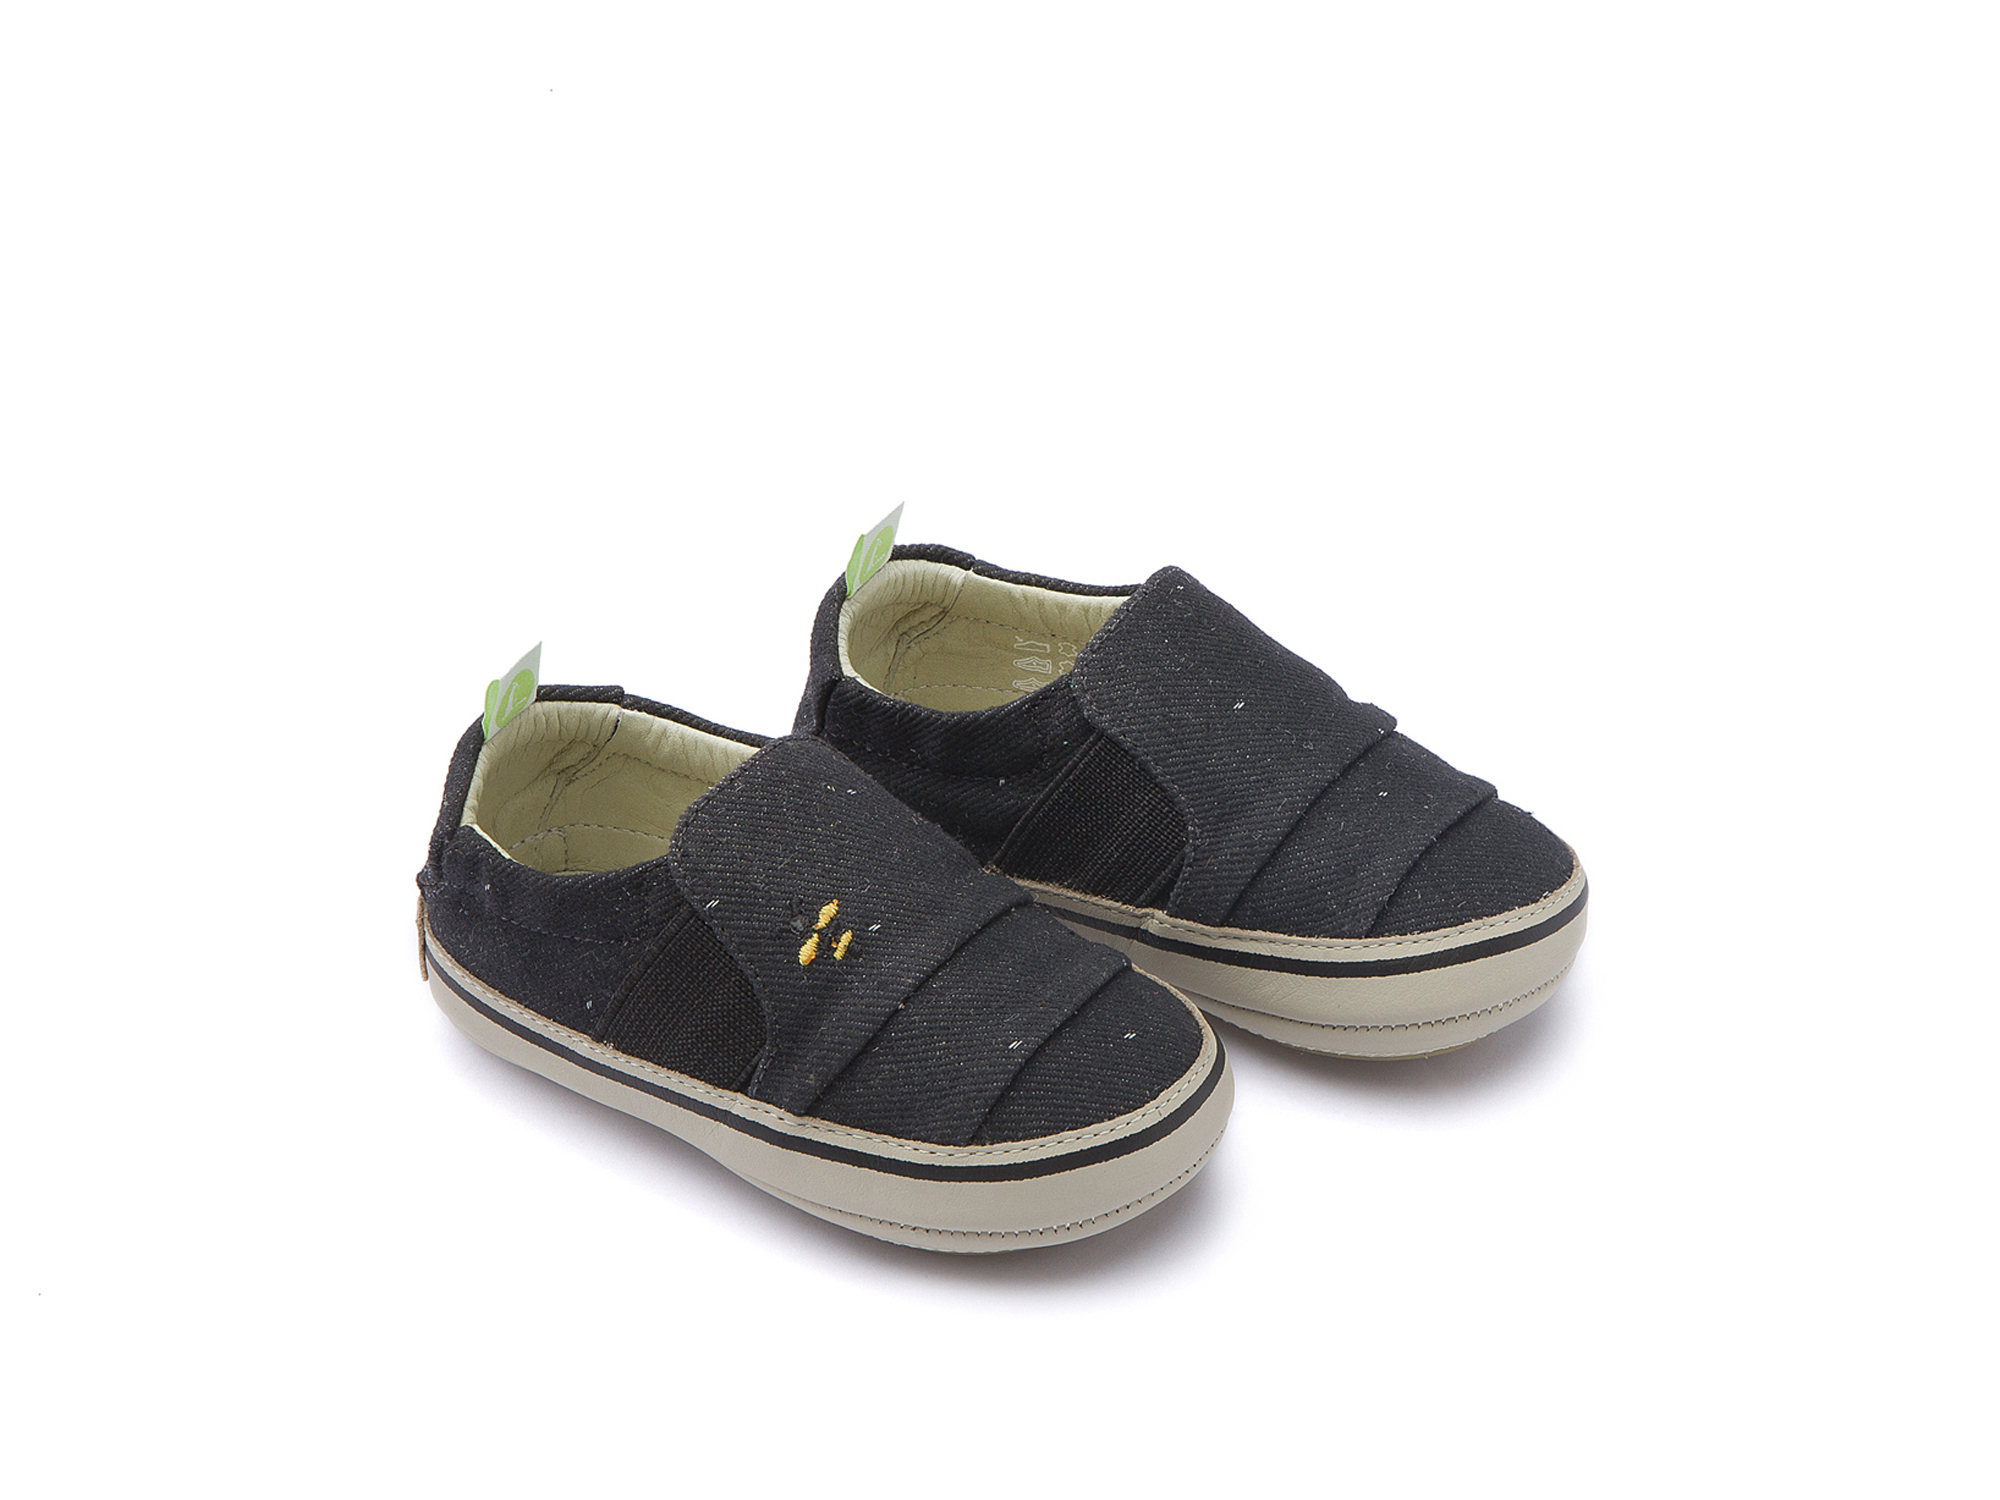 Tênis Slippy Black Space Canvas Beeswax/ Pumice Baby 0 à 2 anos - 0